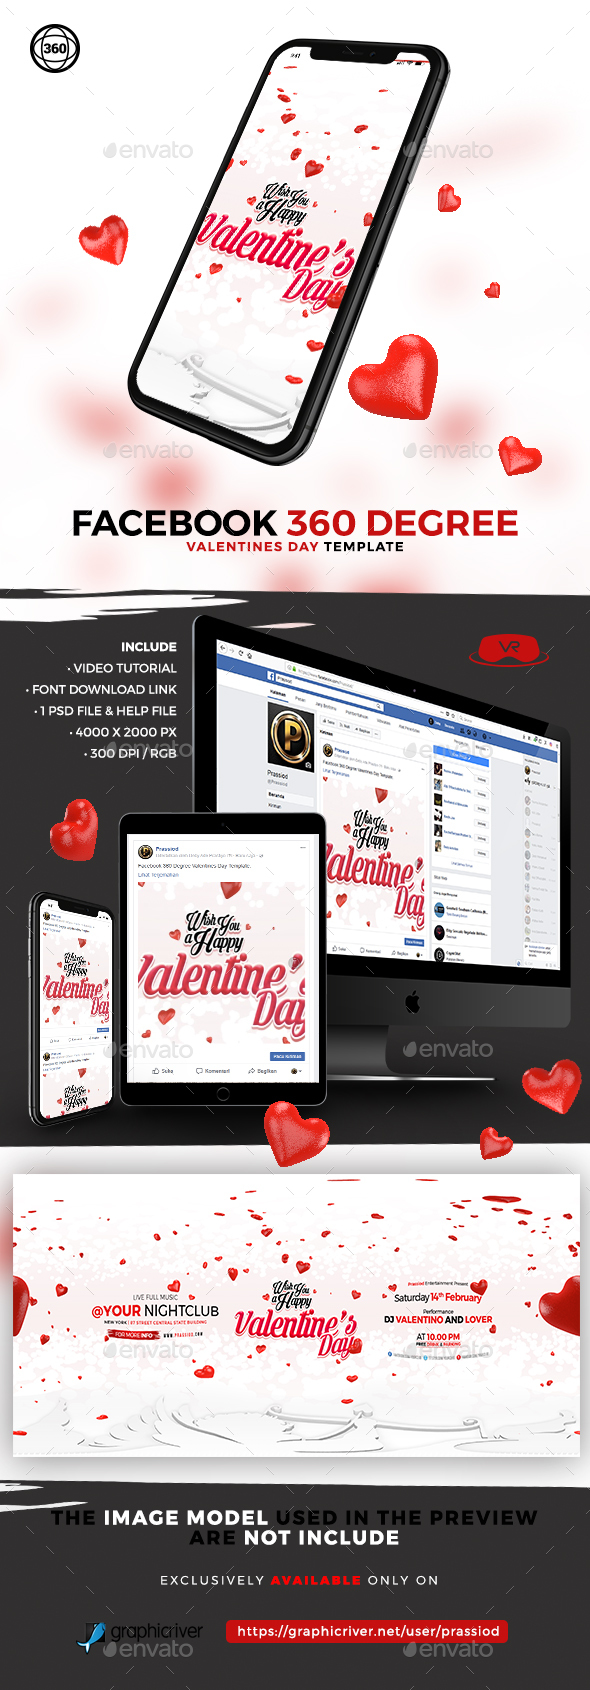 Facebook 360 Degree Valentines Day Template - Miscellaneous Social Media